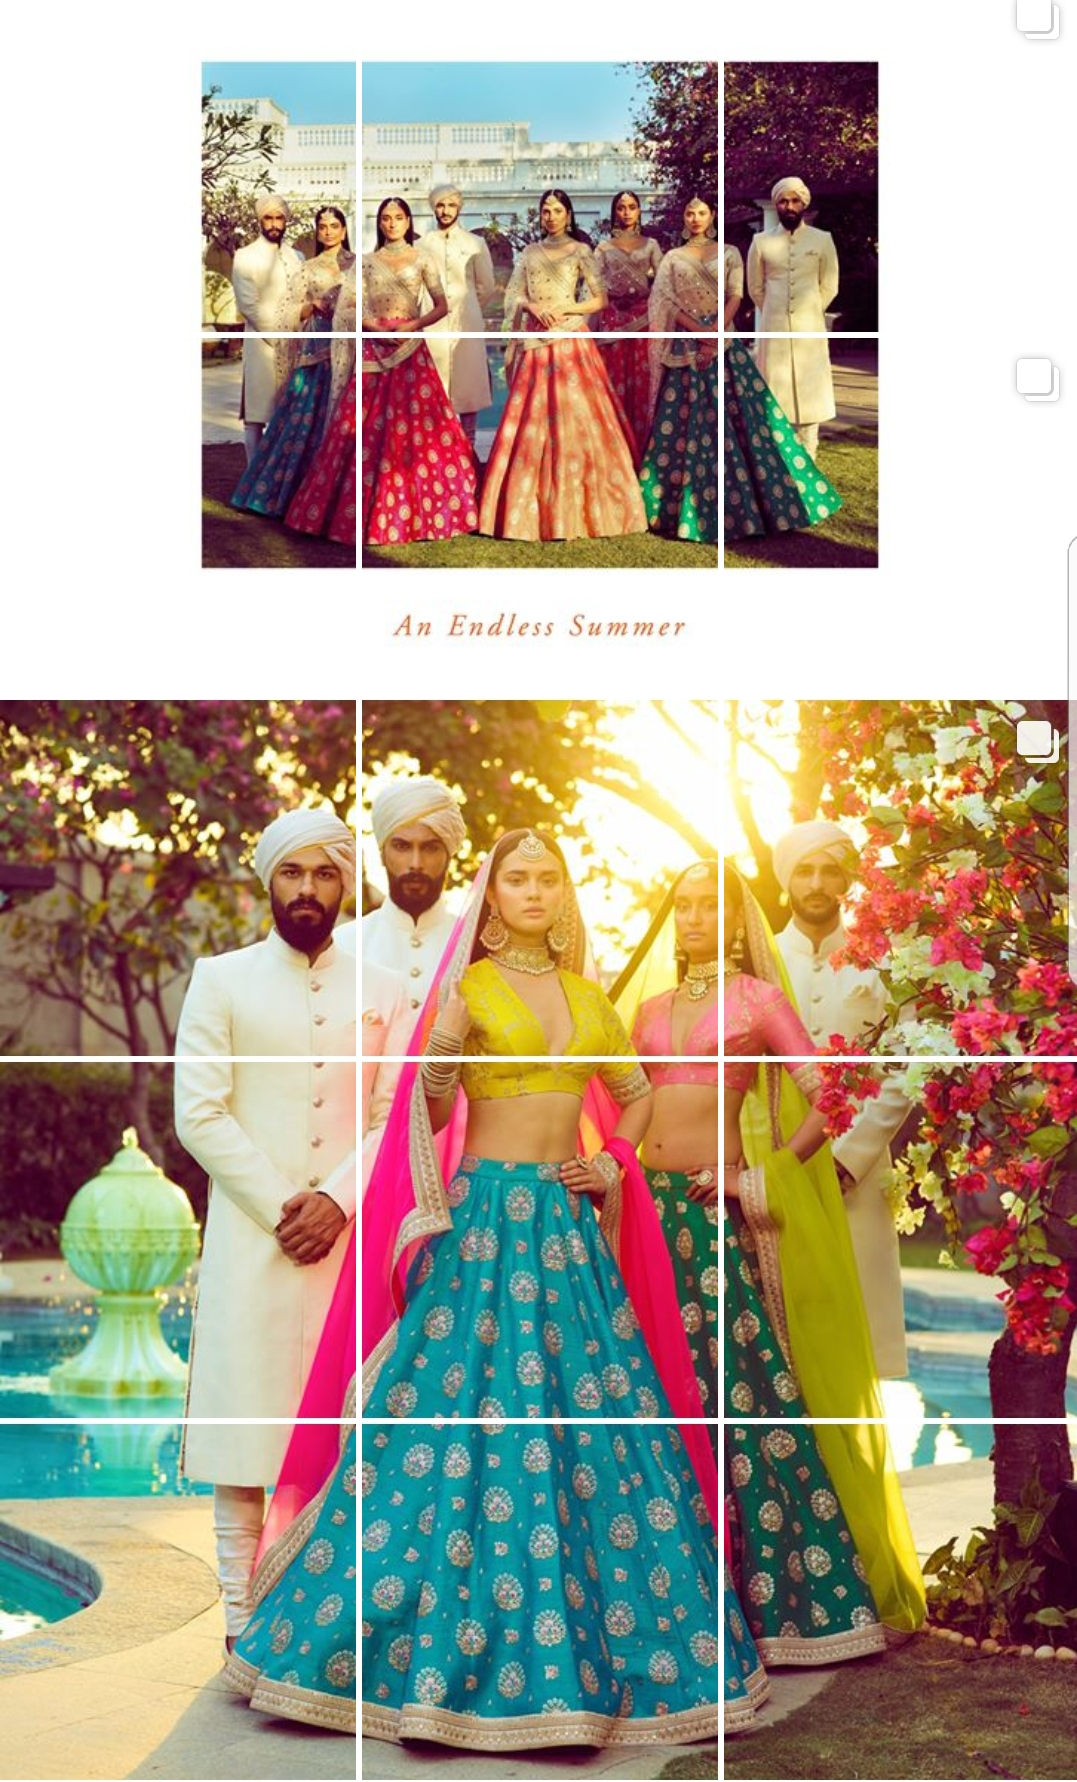 Sabyasachi Mukherjee's An Endless Summer